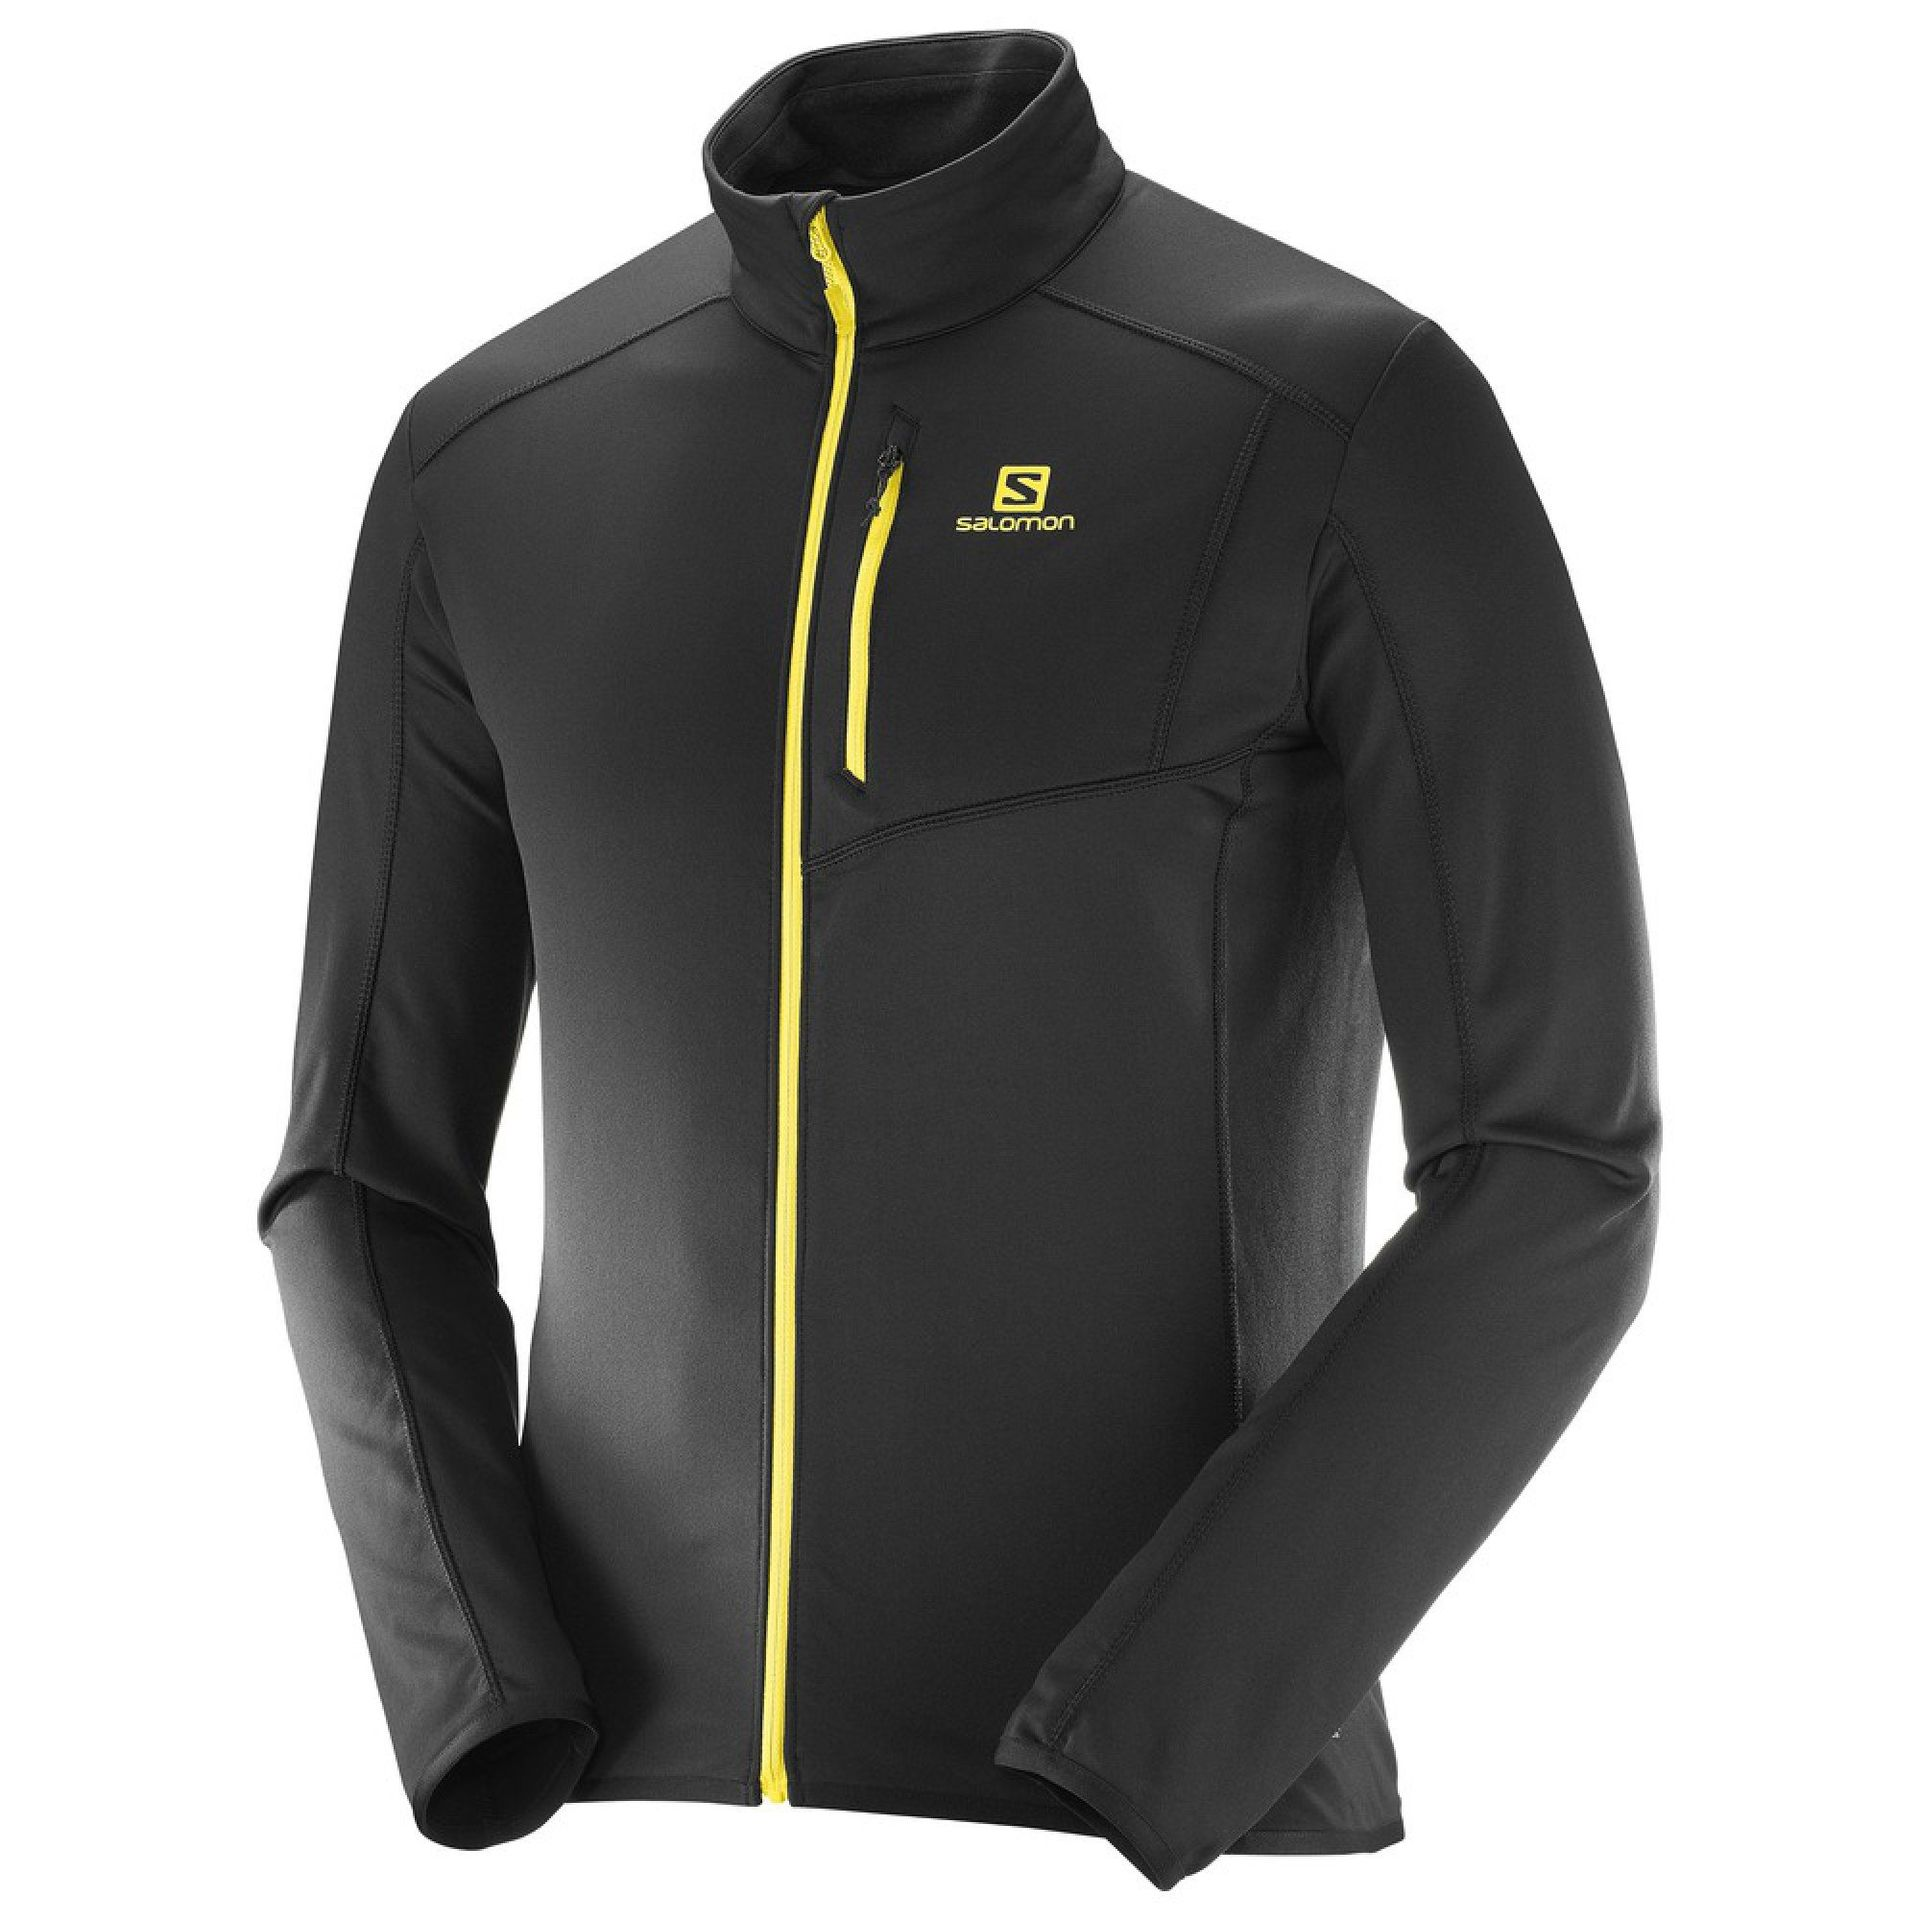 BLUZA SALOMON DISCOVERY FZ BLAZING YELLOW